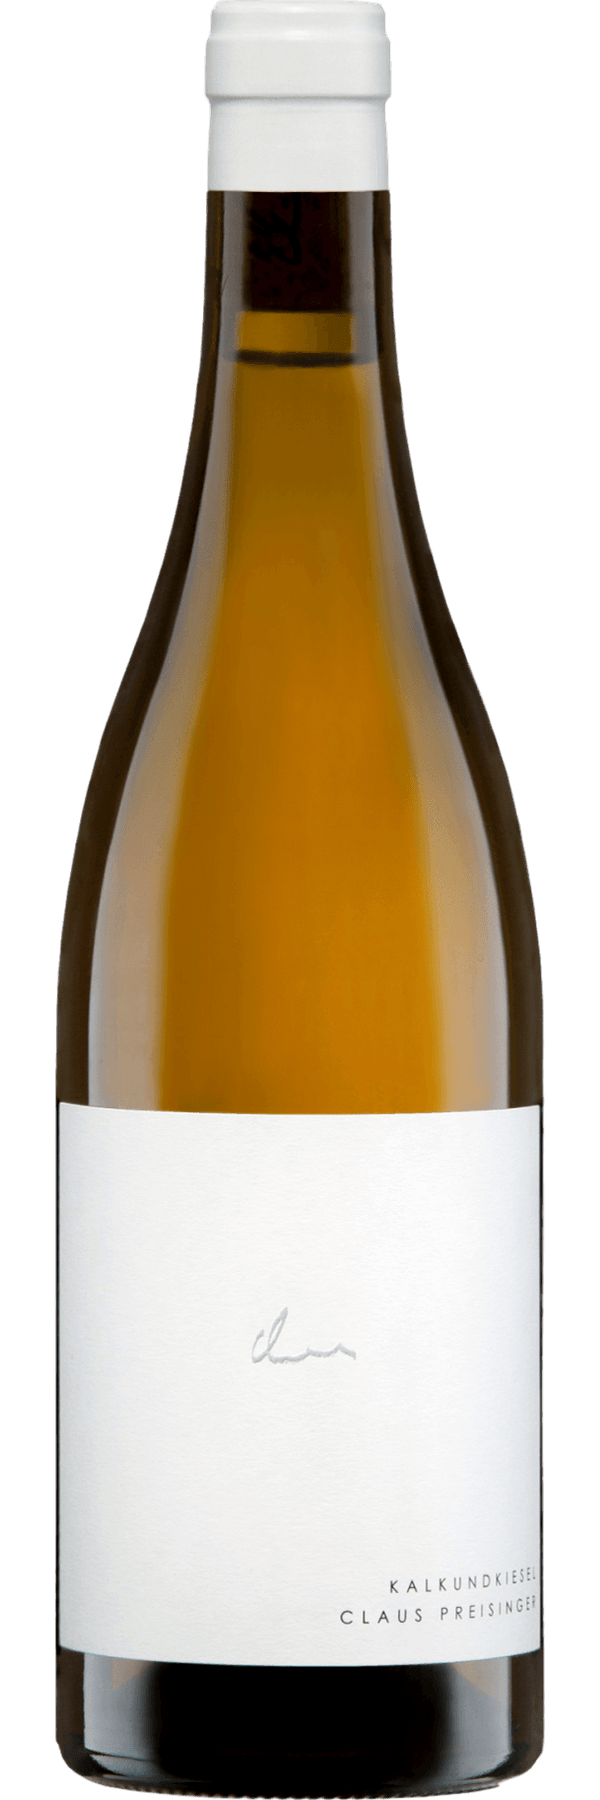 Claus Preisinger Kalk & Kiesel 2016 White Field Blend Wine